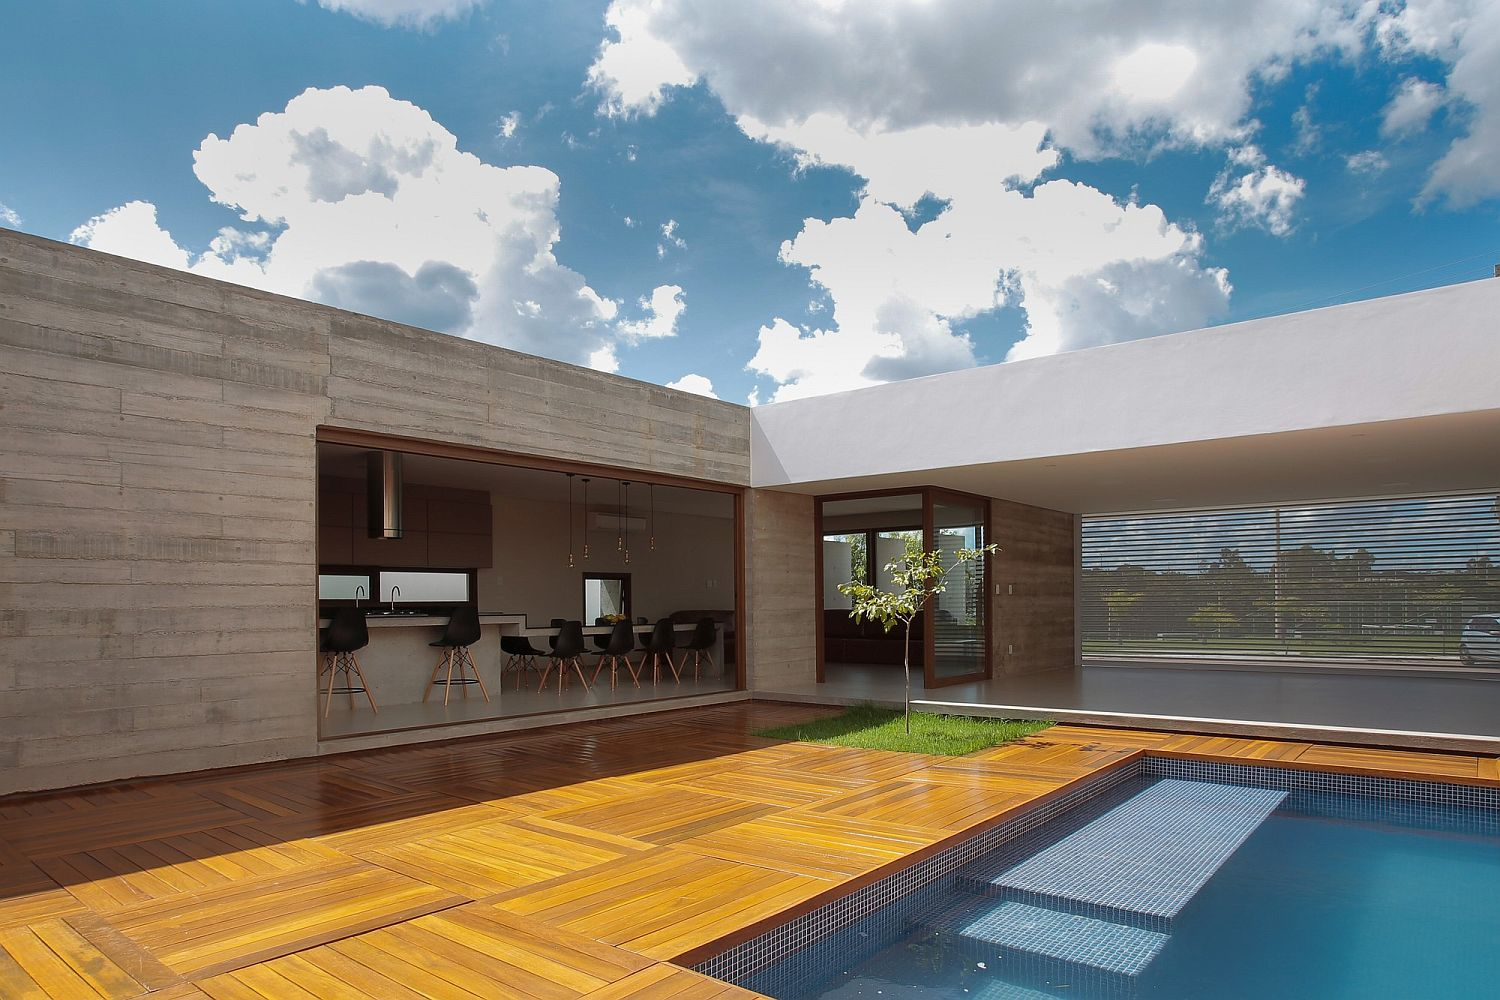 Stylish contemporary interiors pool area of the private brazilian residence